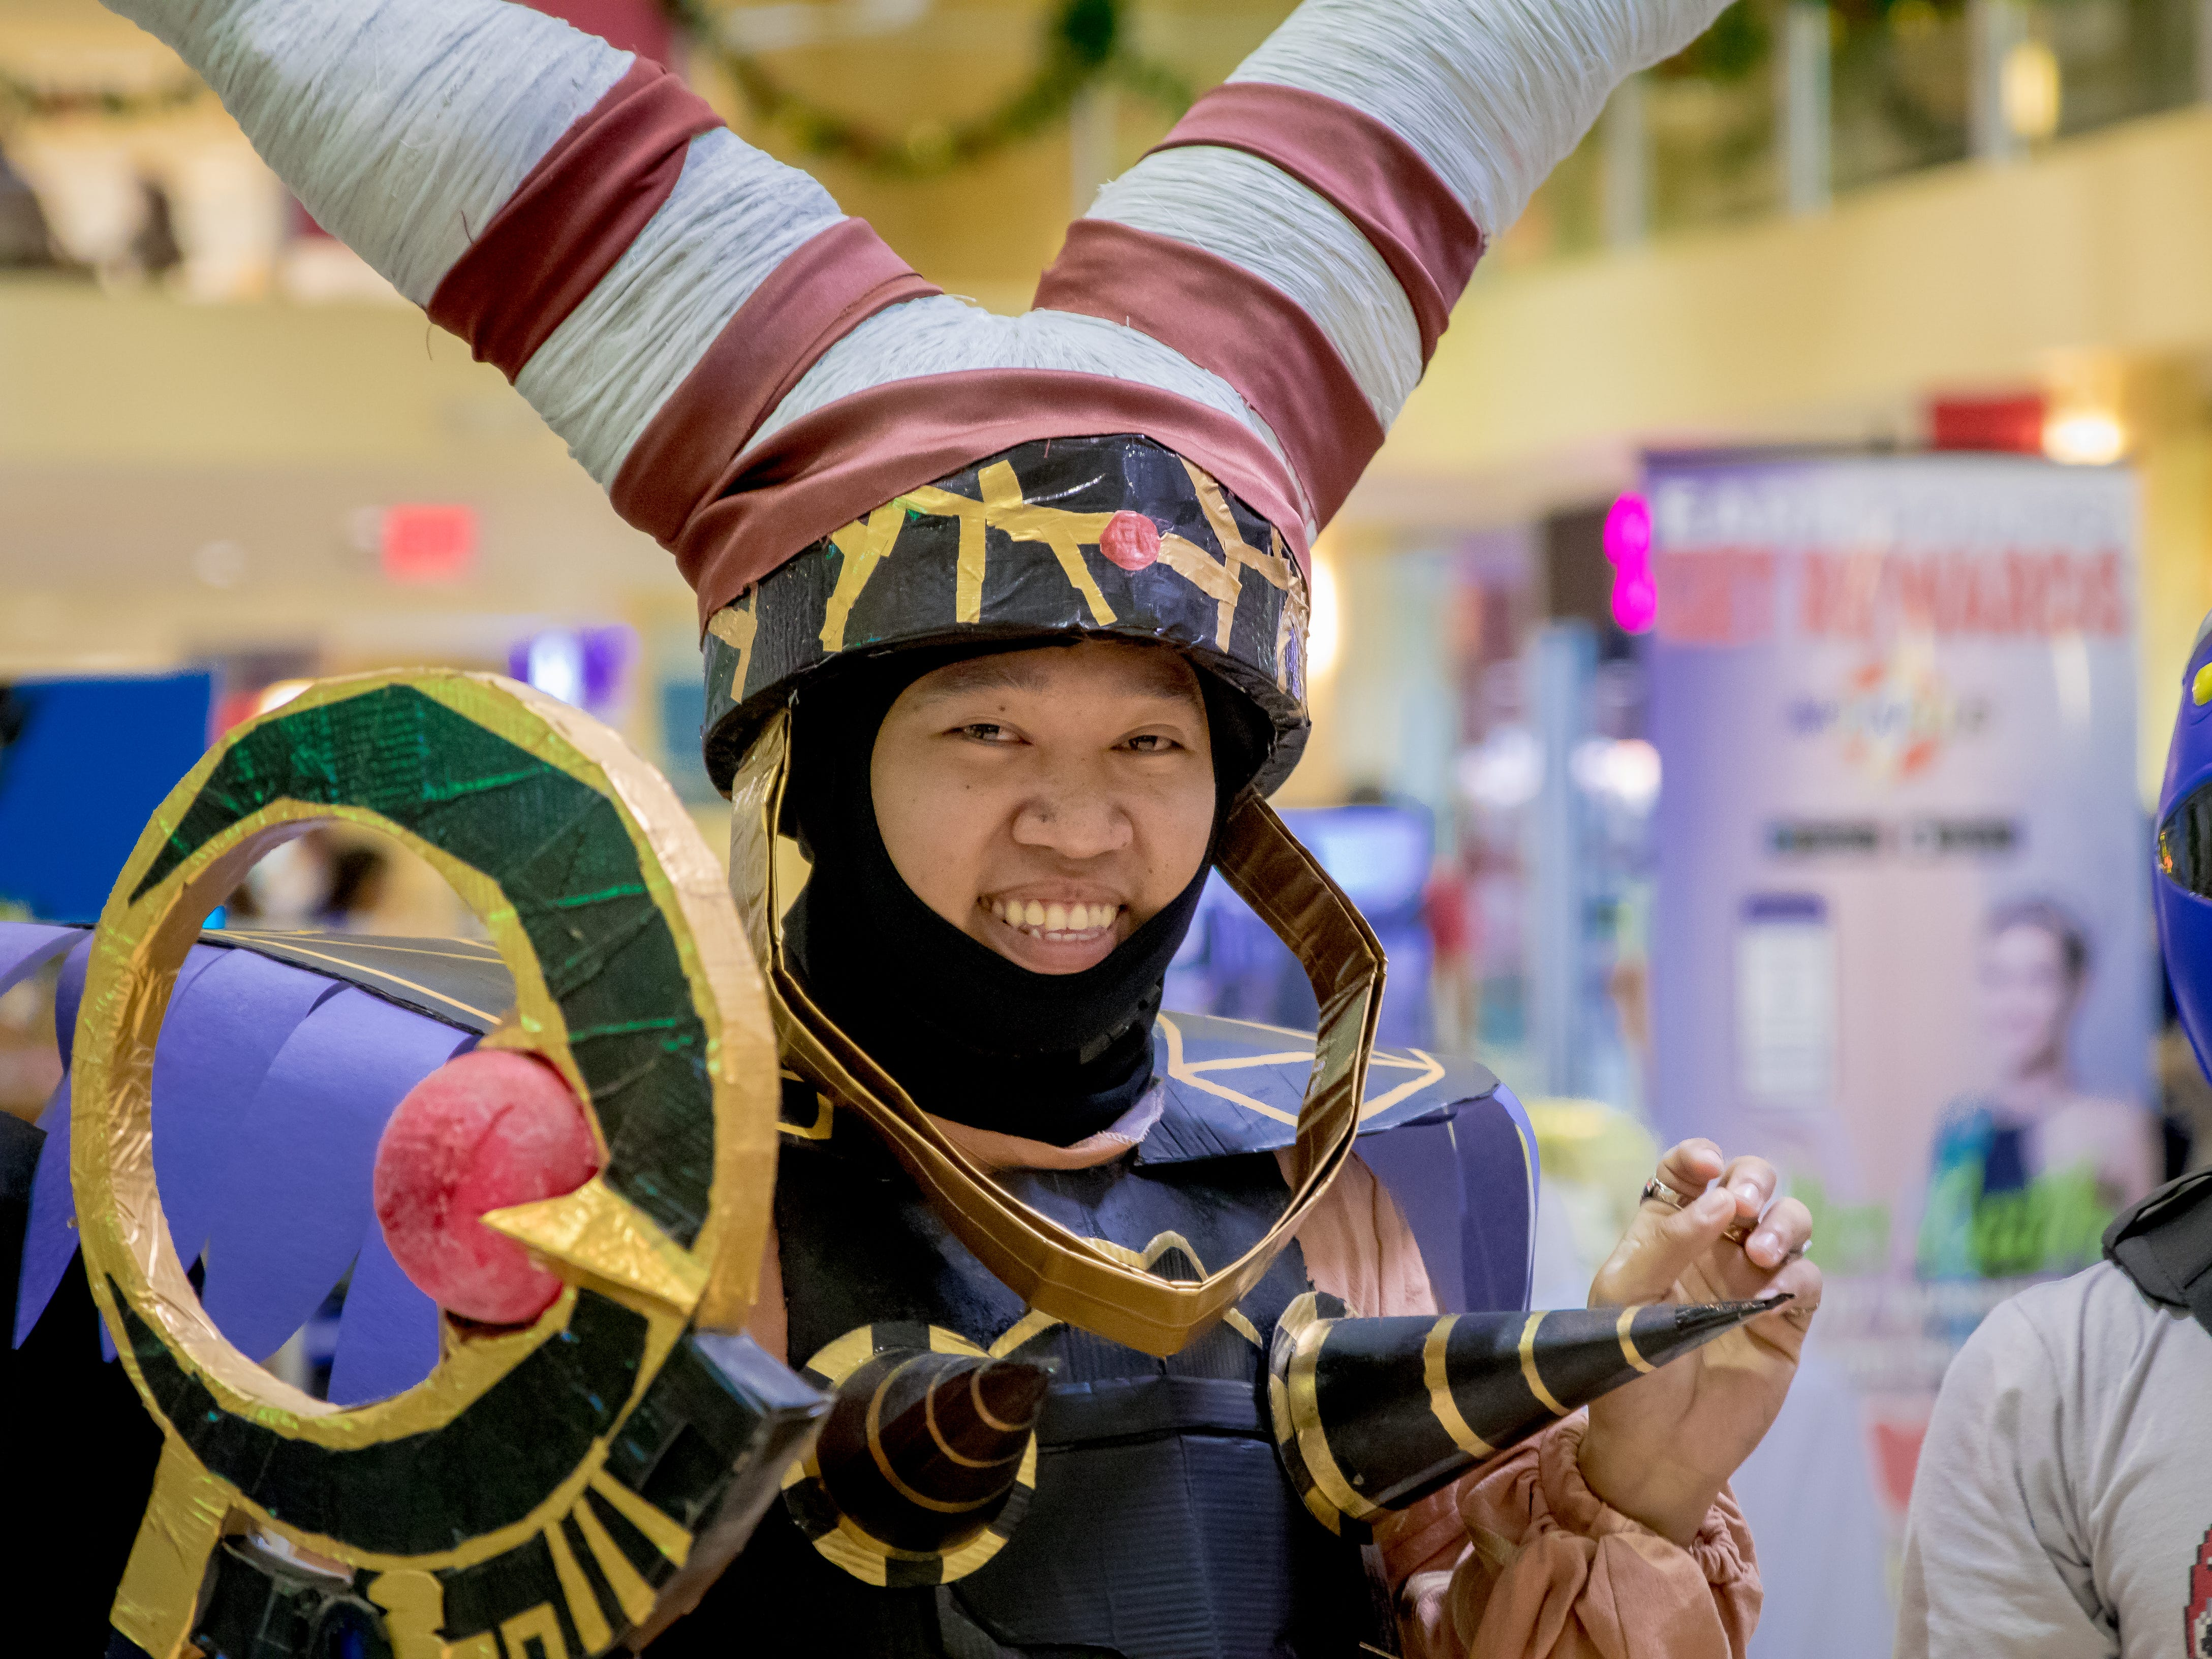 Cosplayers show off their characters during the Herocon event held at Agana Shopping Center on Dec. 9.